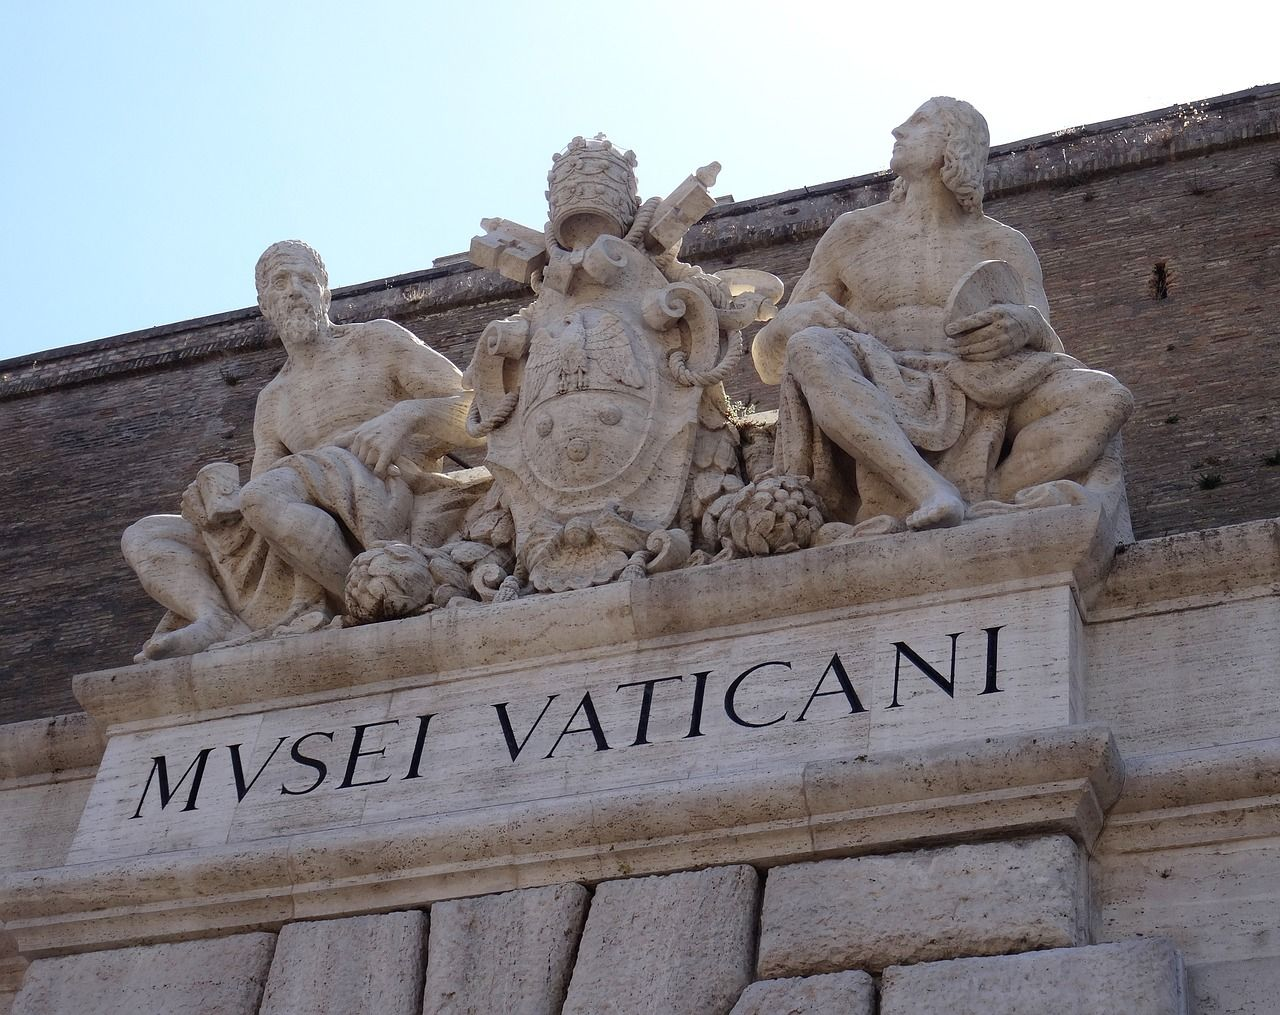 Vatican Museums, Rome: All year